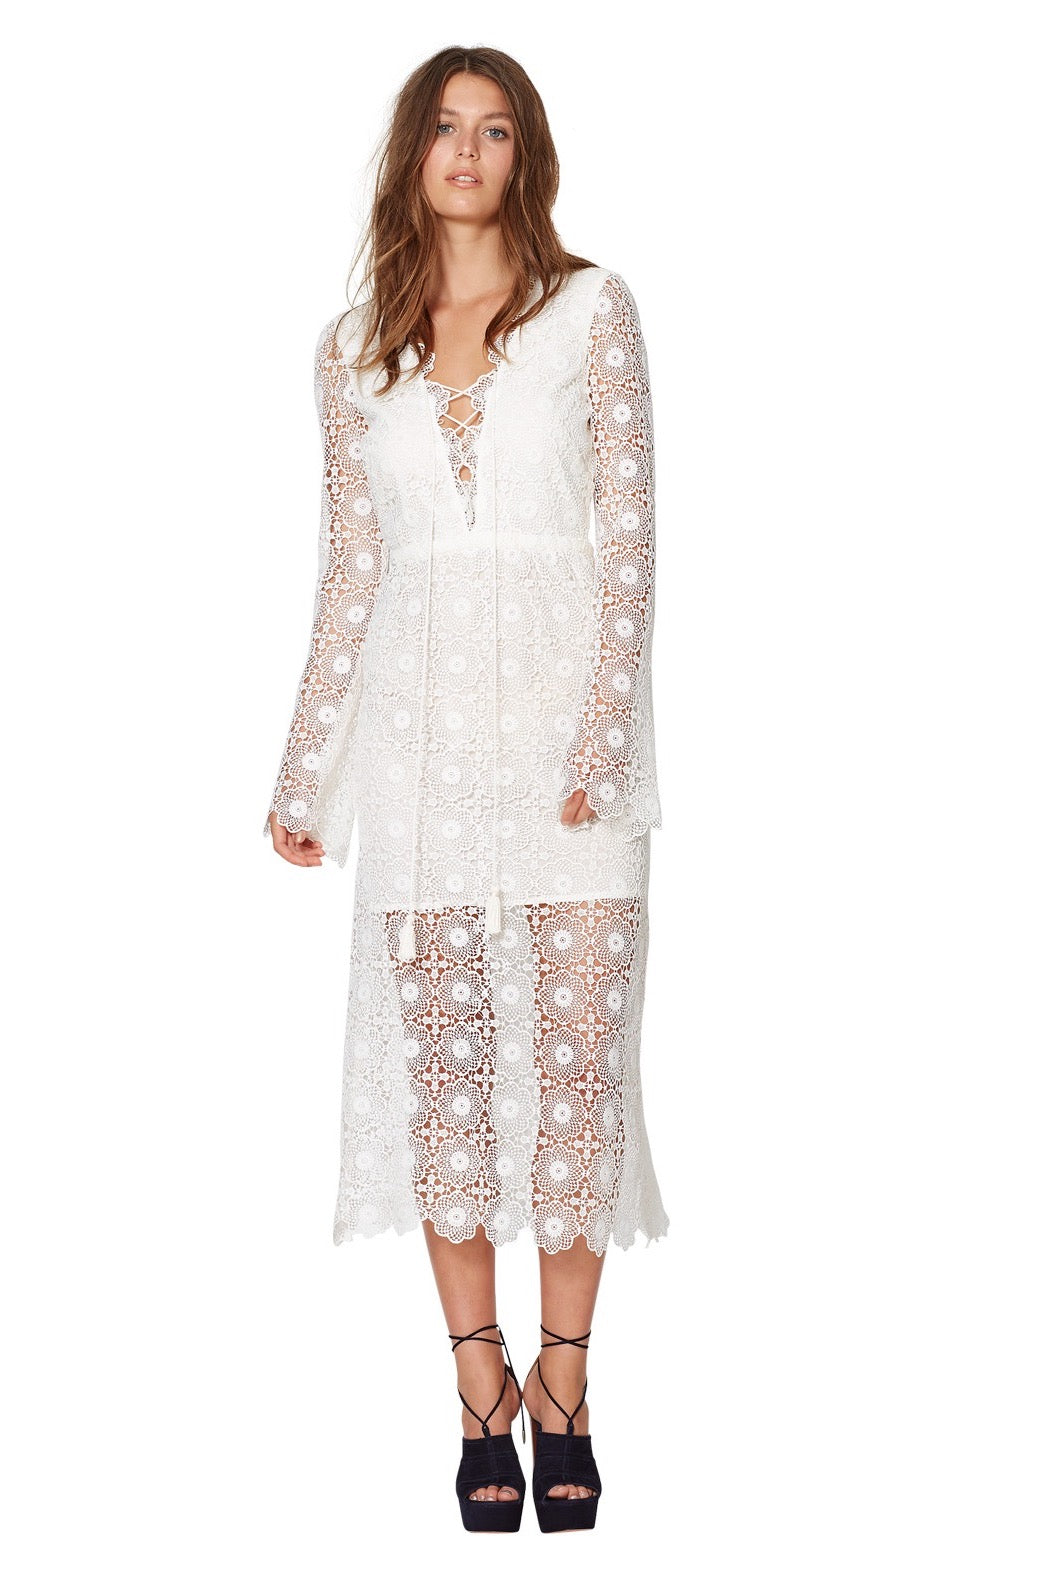 Daisy Chain Long Sleeve Dress